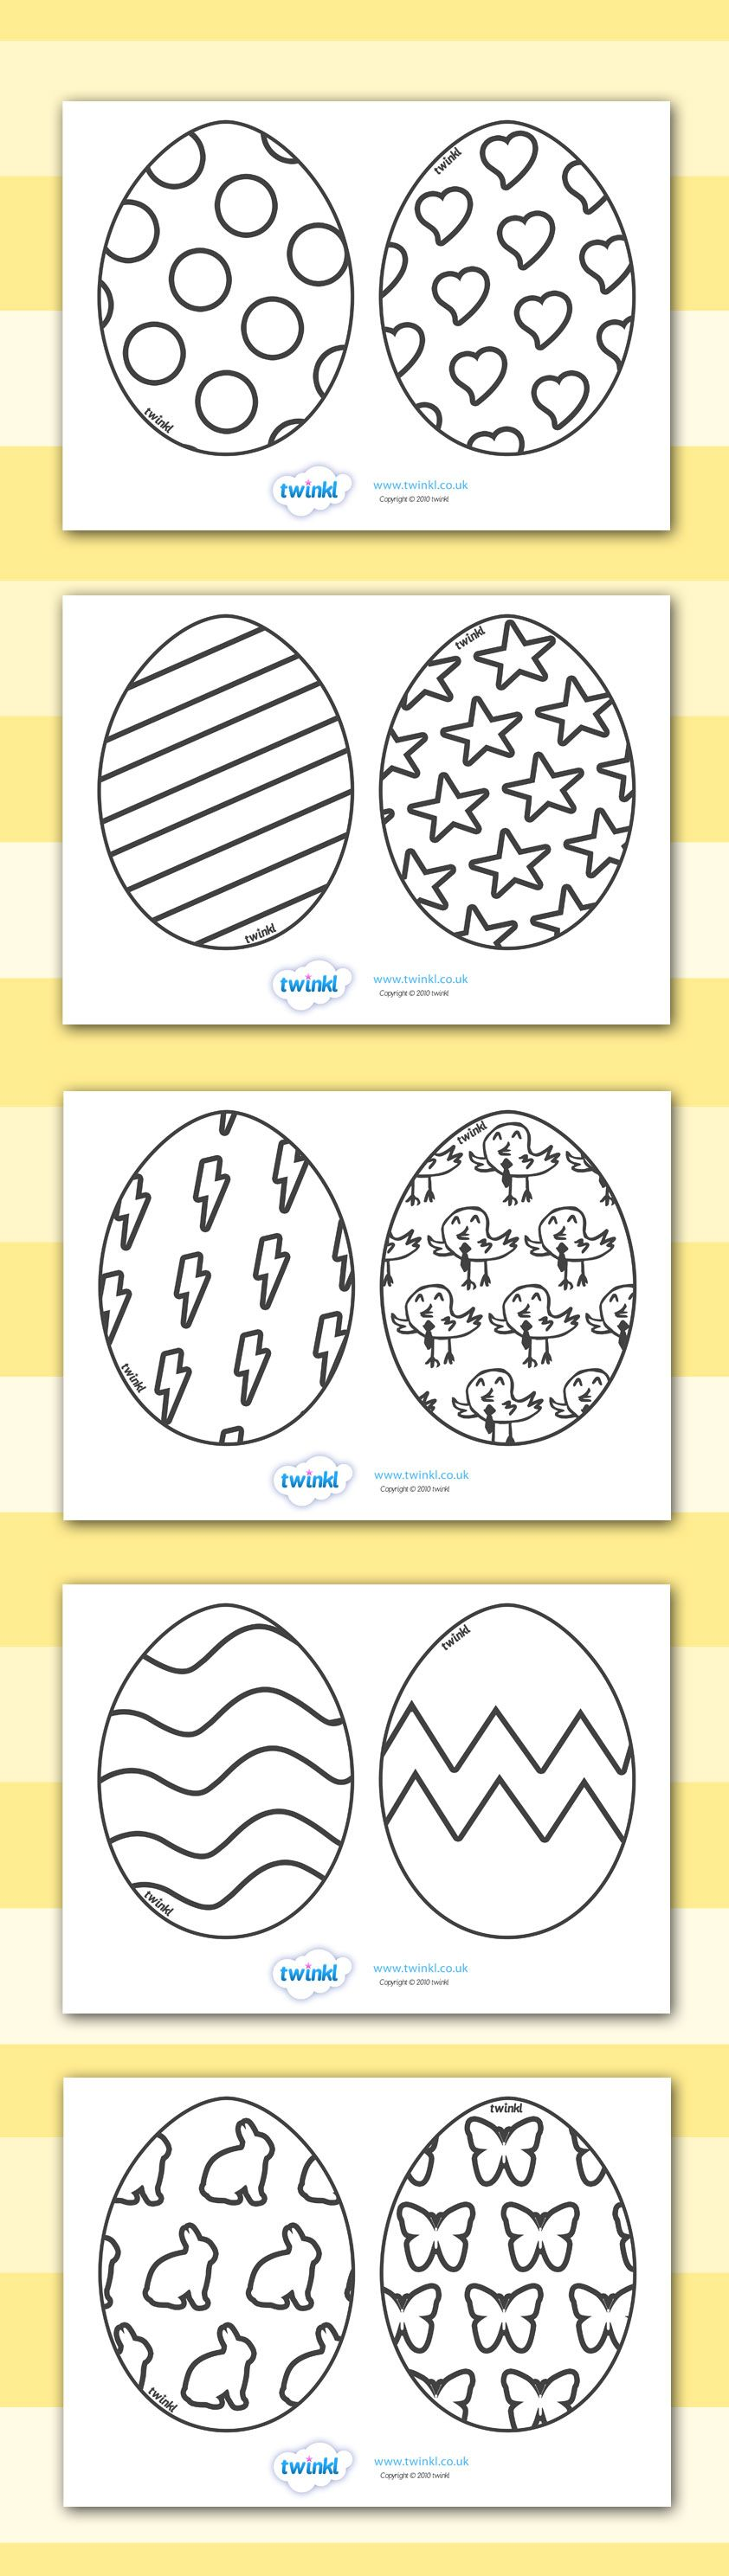 Twinkl Resources Easter Egg Templates Printable Resources For Primary Eyfs Ks1 And Sen Thousands Of Easter Egg Template Easter Preschool Easter Kids